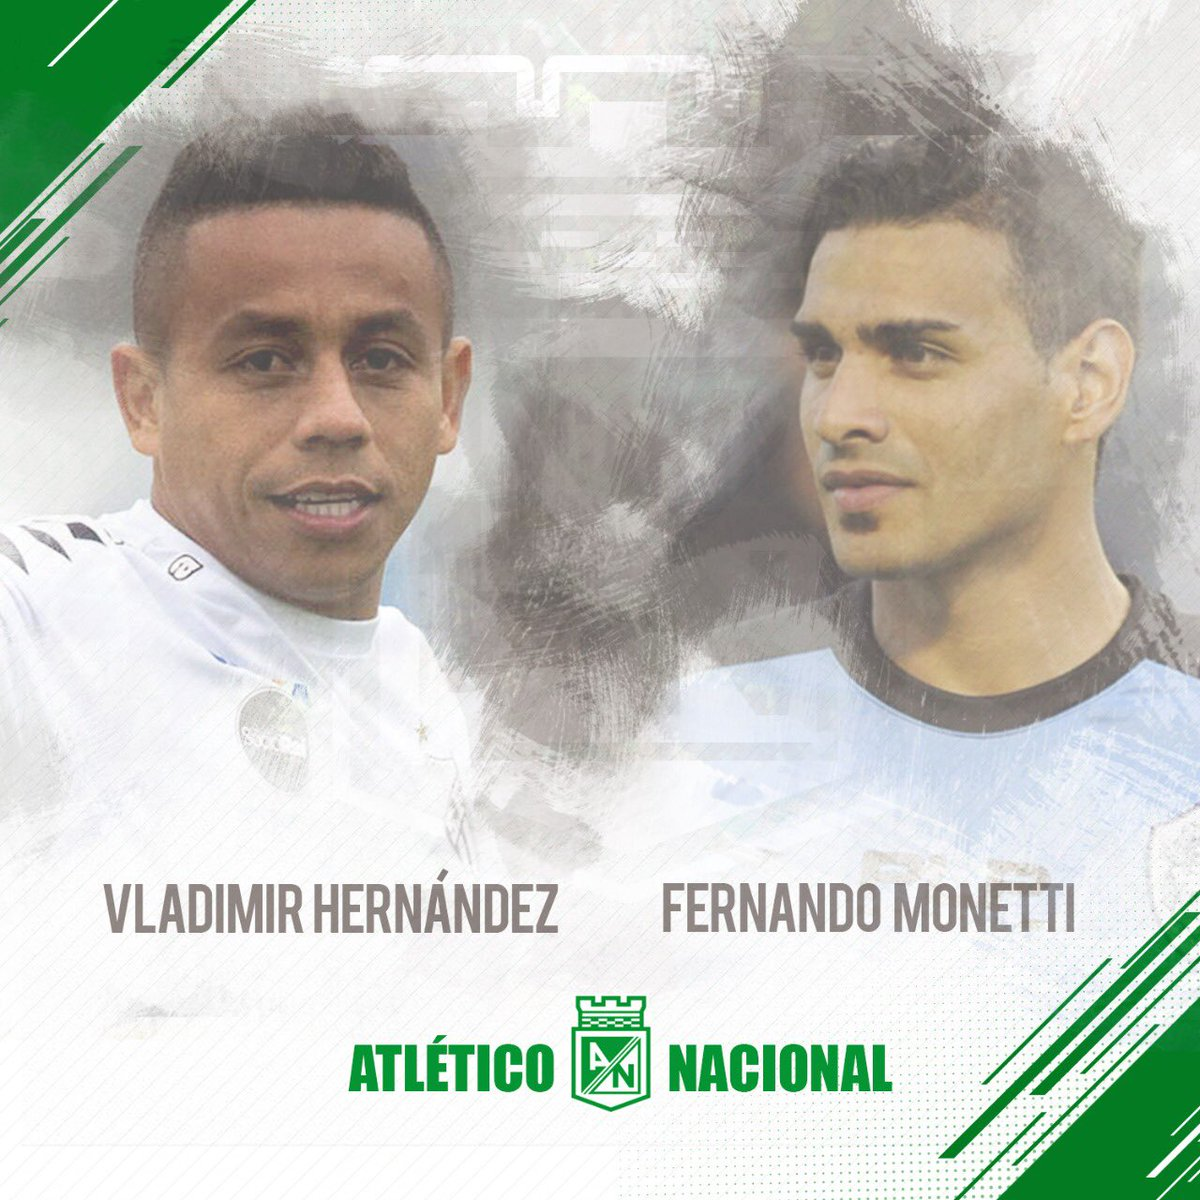 Atlético Nacional's photo on Fernando Monetti